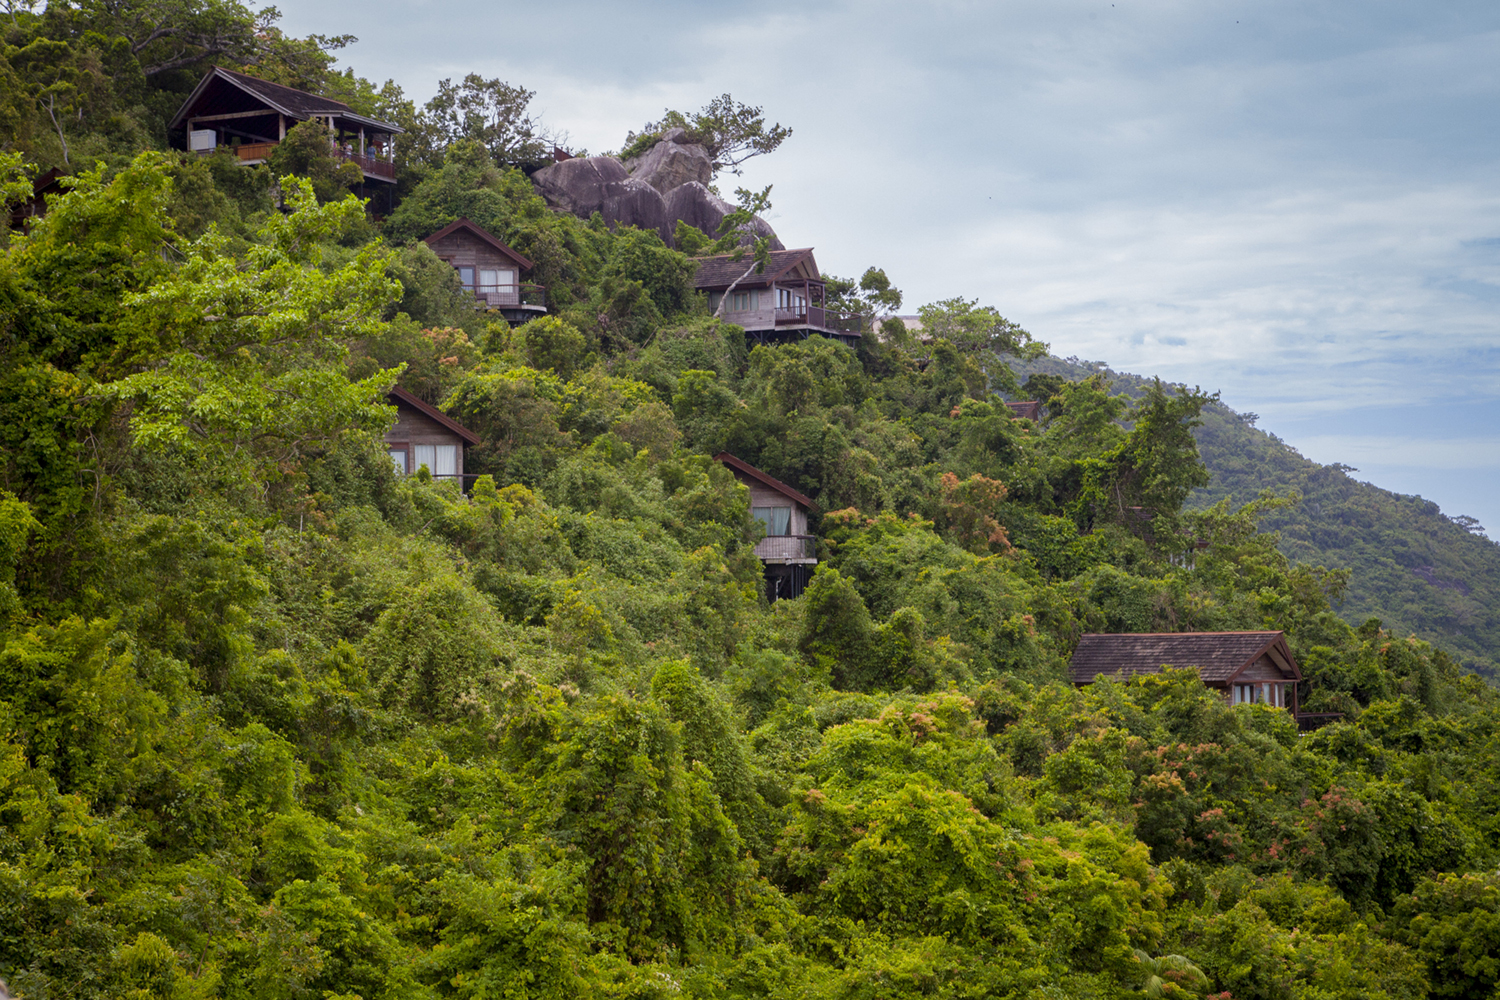 Nestled into the jungle: Earthly Paradise. Image by Dora Whitaker / Lonely Planet